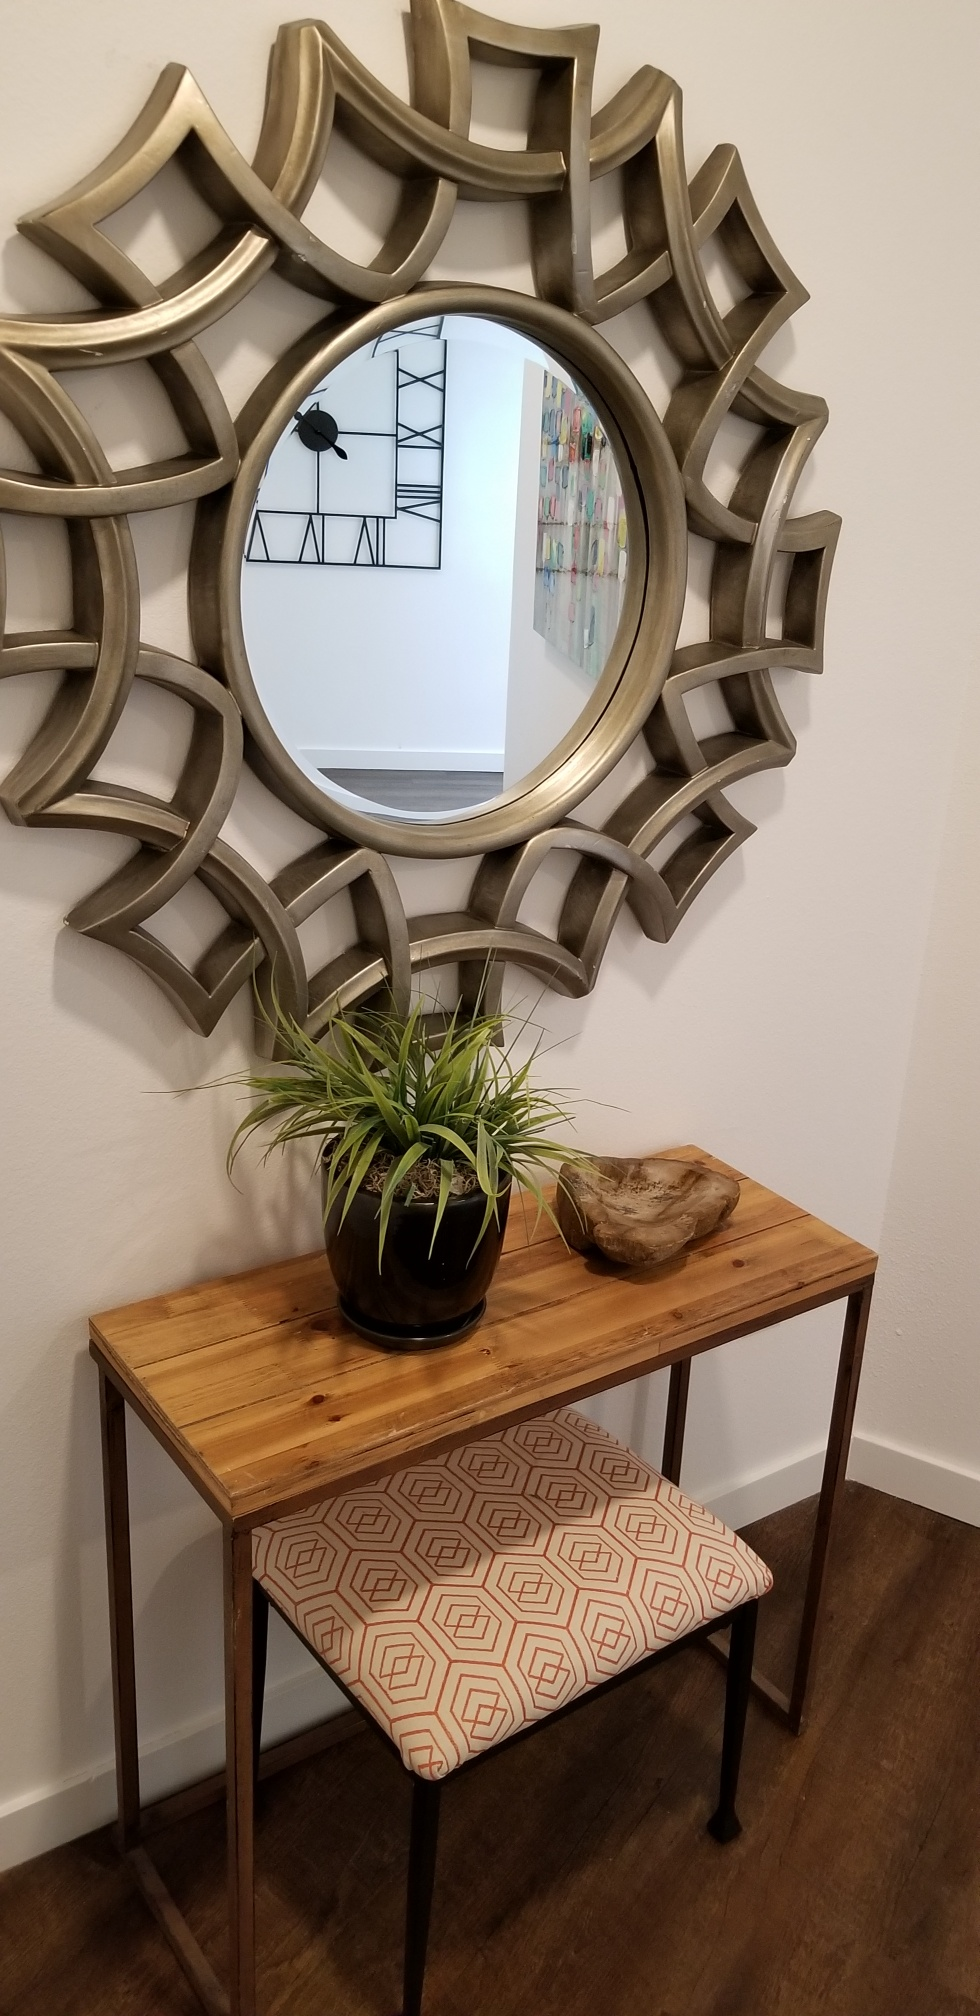 Circular Mirror at 727 Lofts Apartments in Jenks, Oklahoma